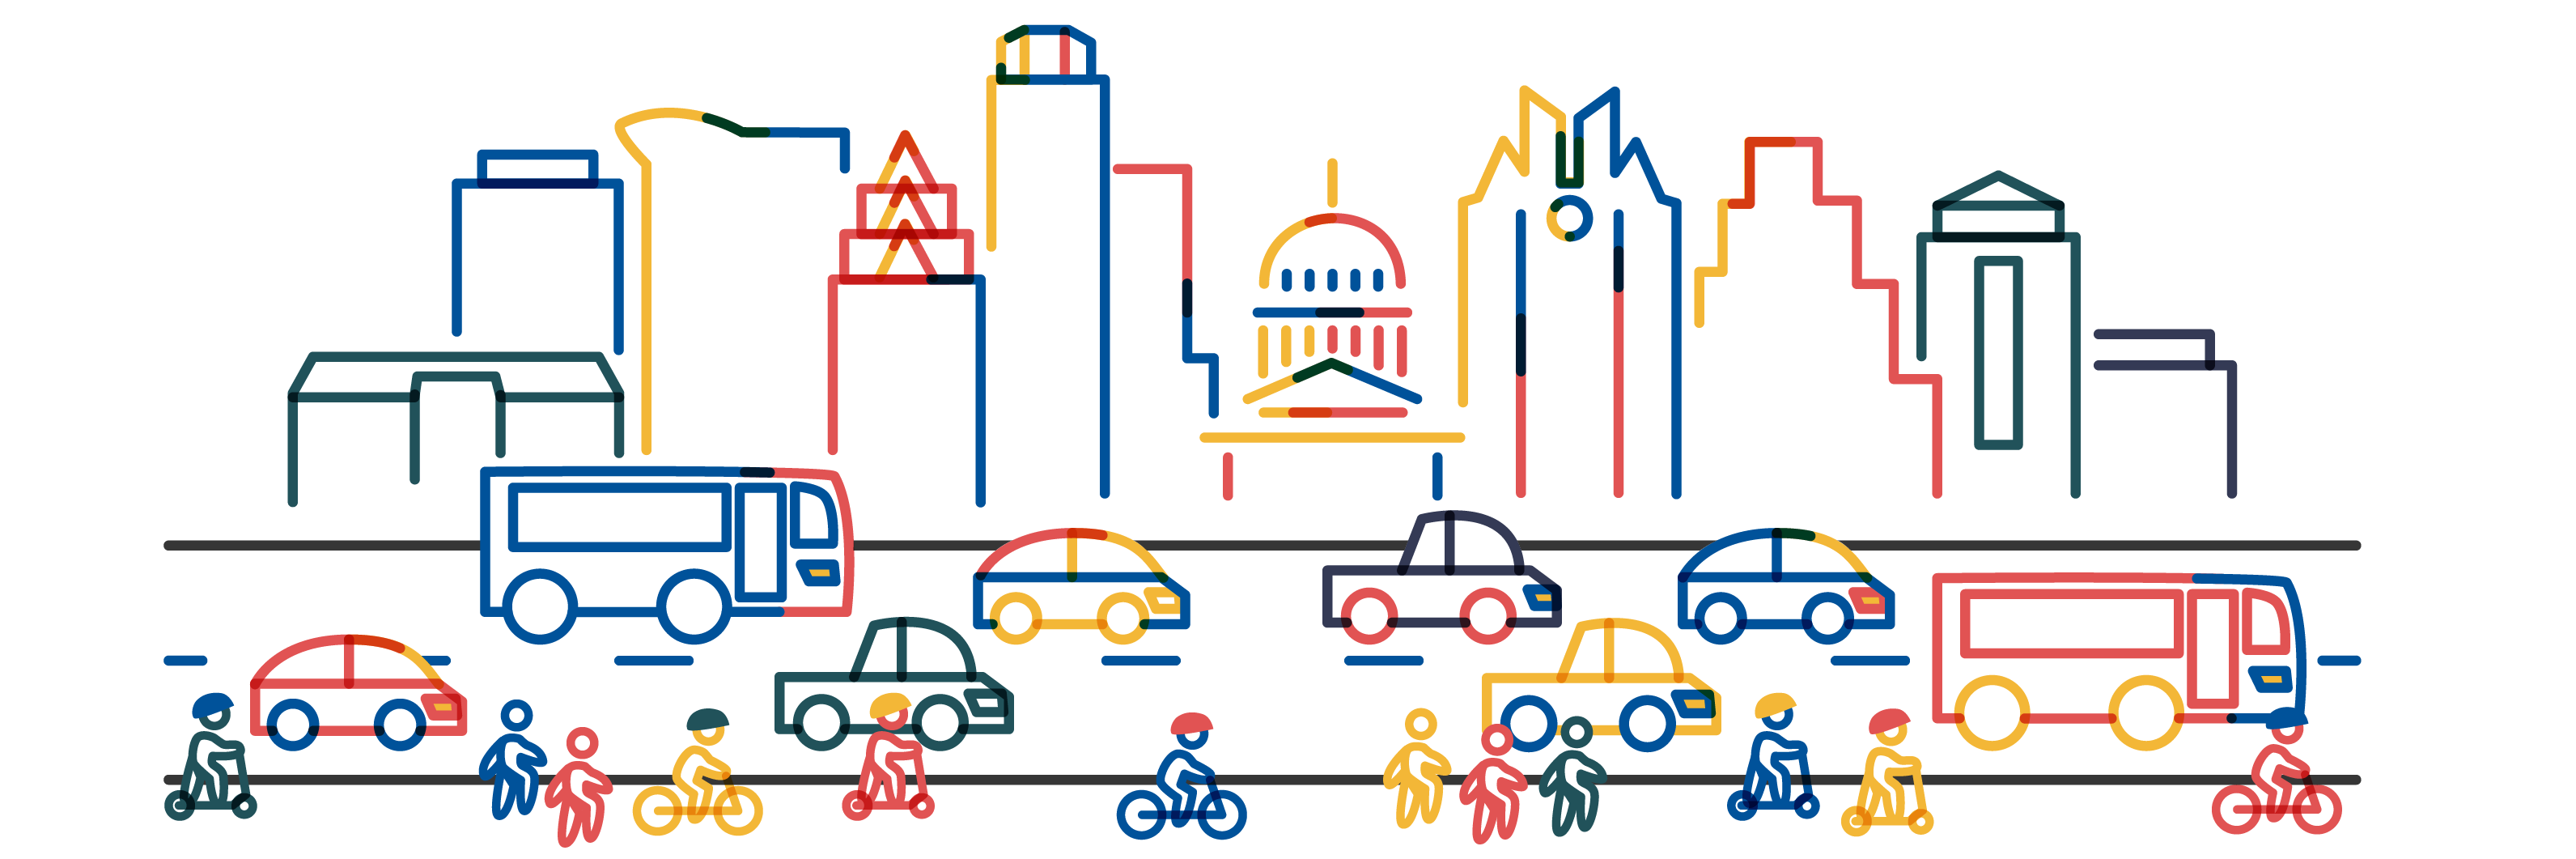 Red, yellow and blue icons of the Austin skyline with people traveling by bicycles, scooter and on foot on the sidewalk and cars, trucks and buses traveling along the roadway